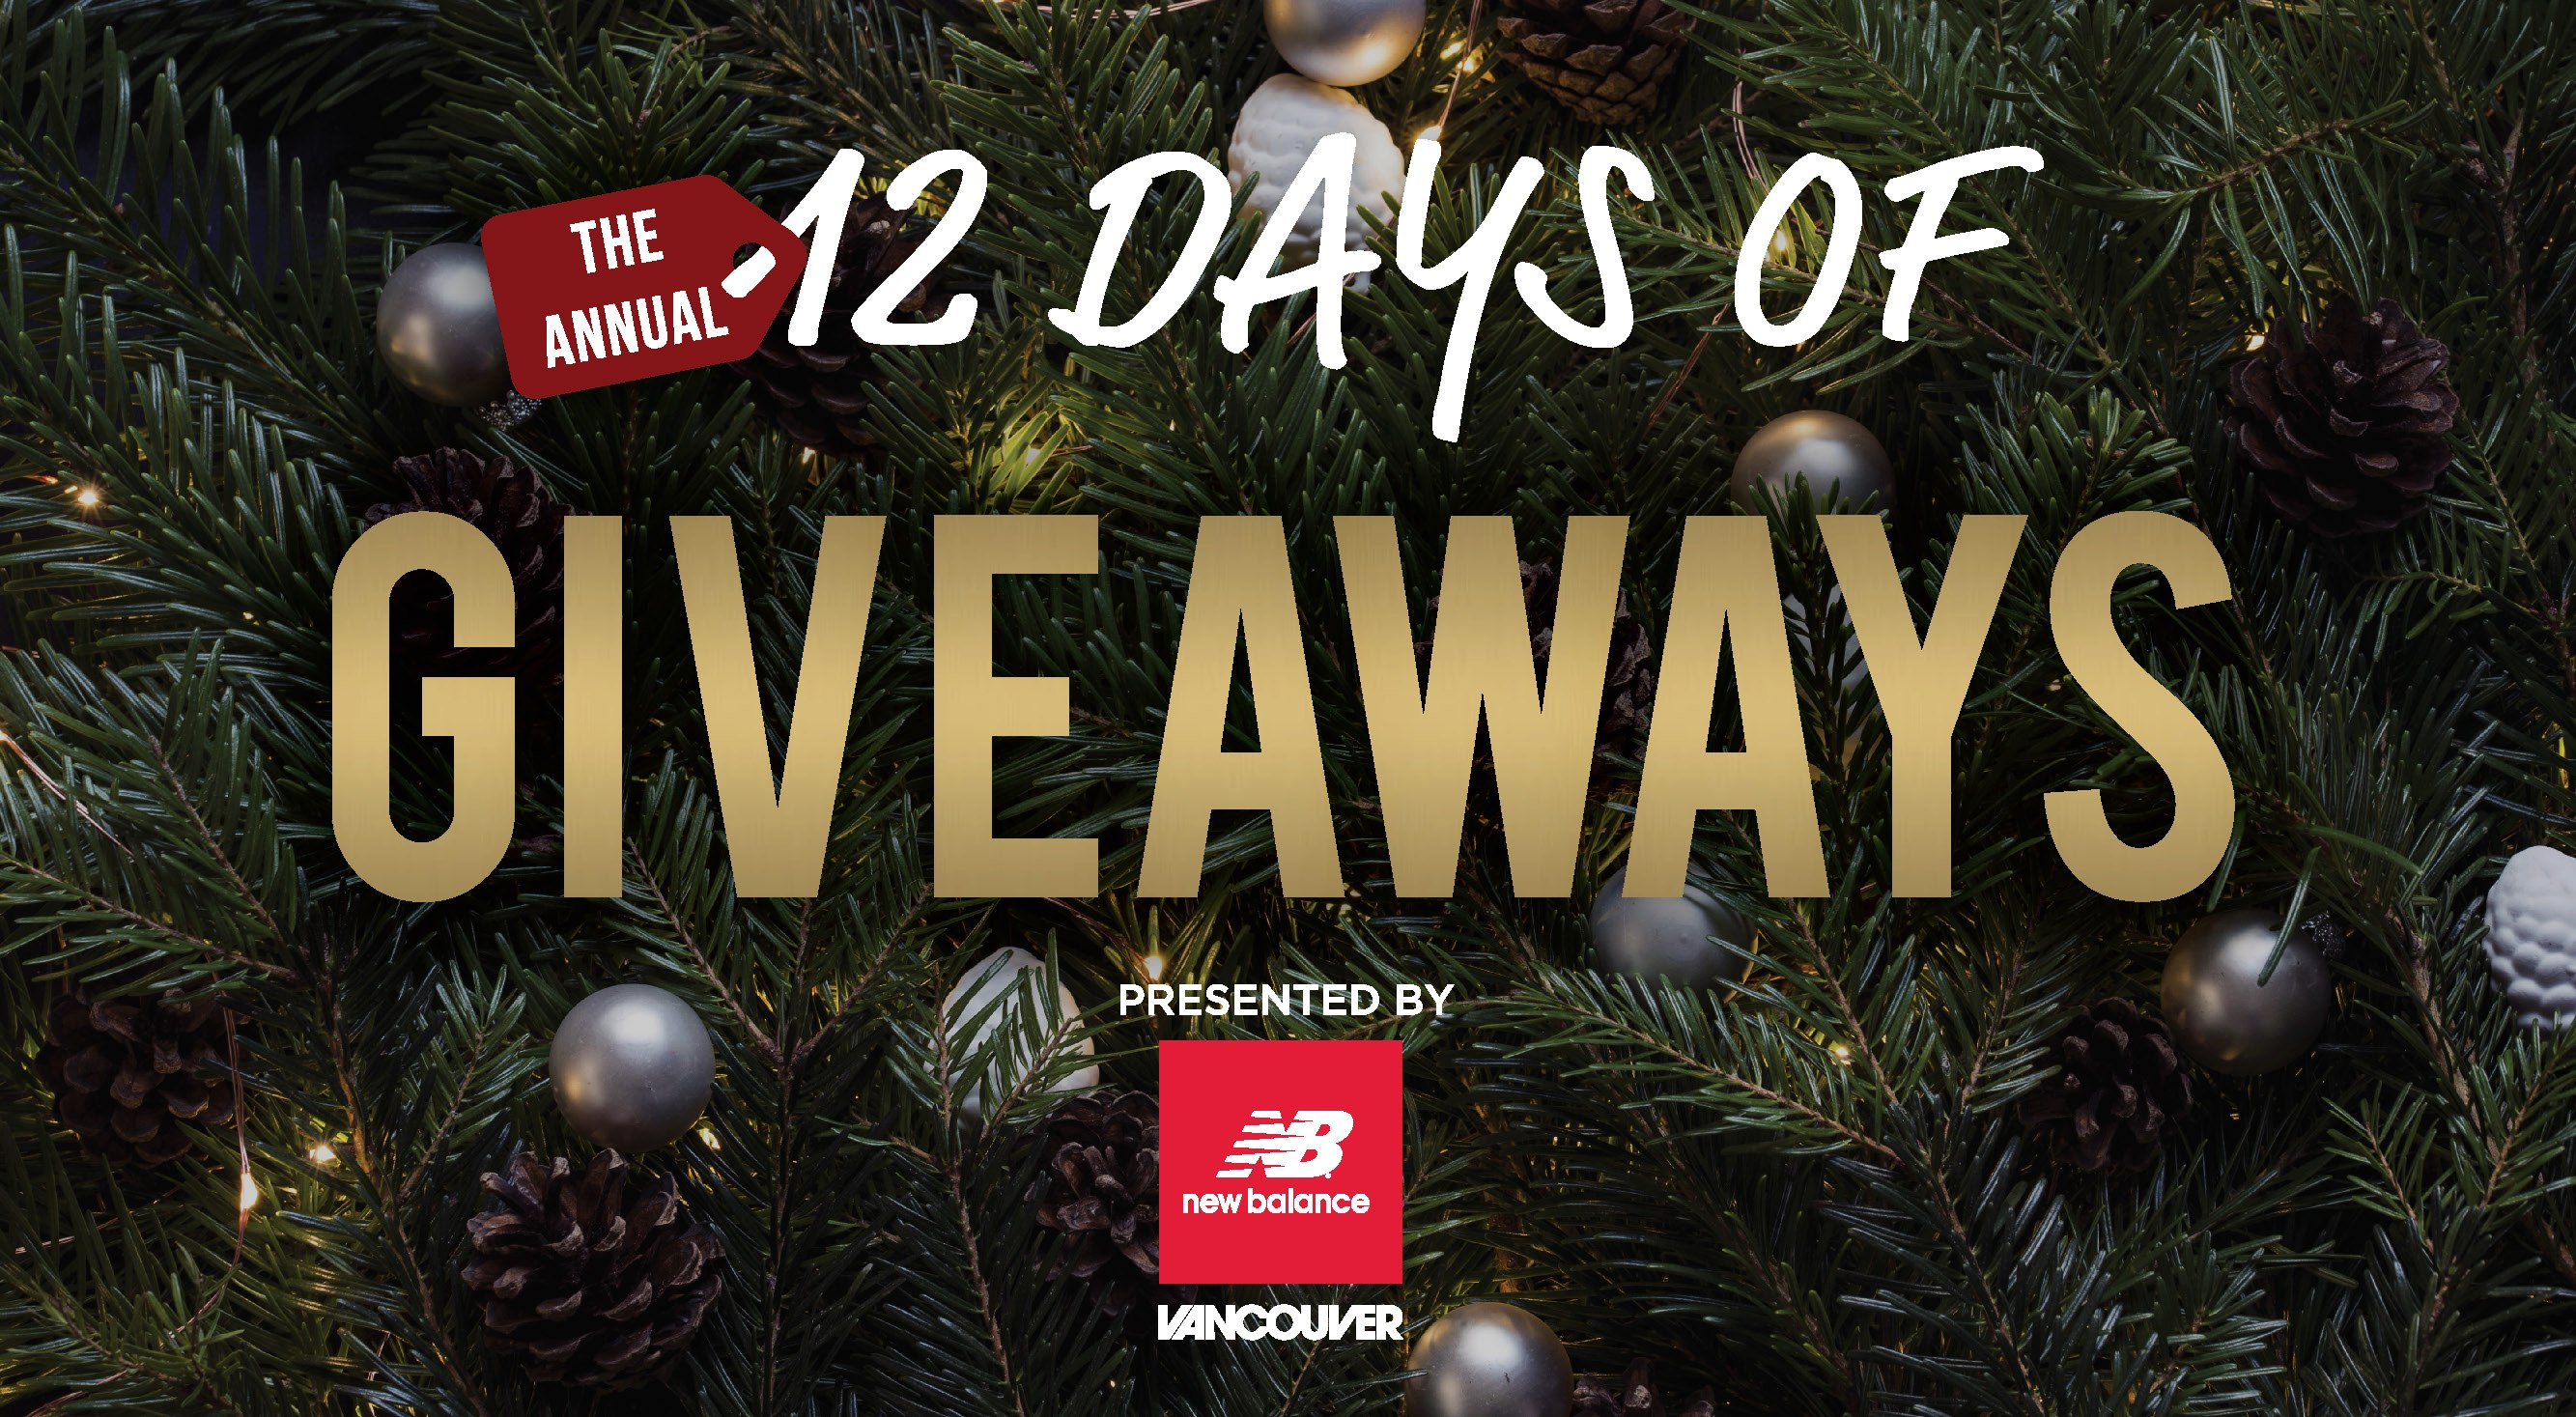 More than $32,000 in prizes in our annual 12 Days of Giveaways